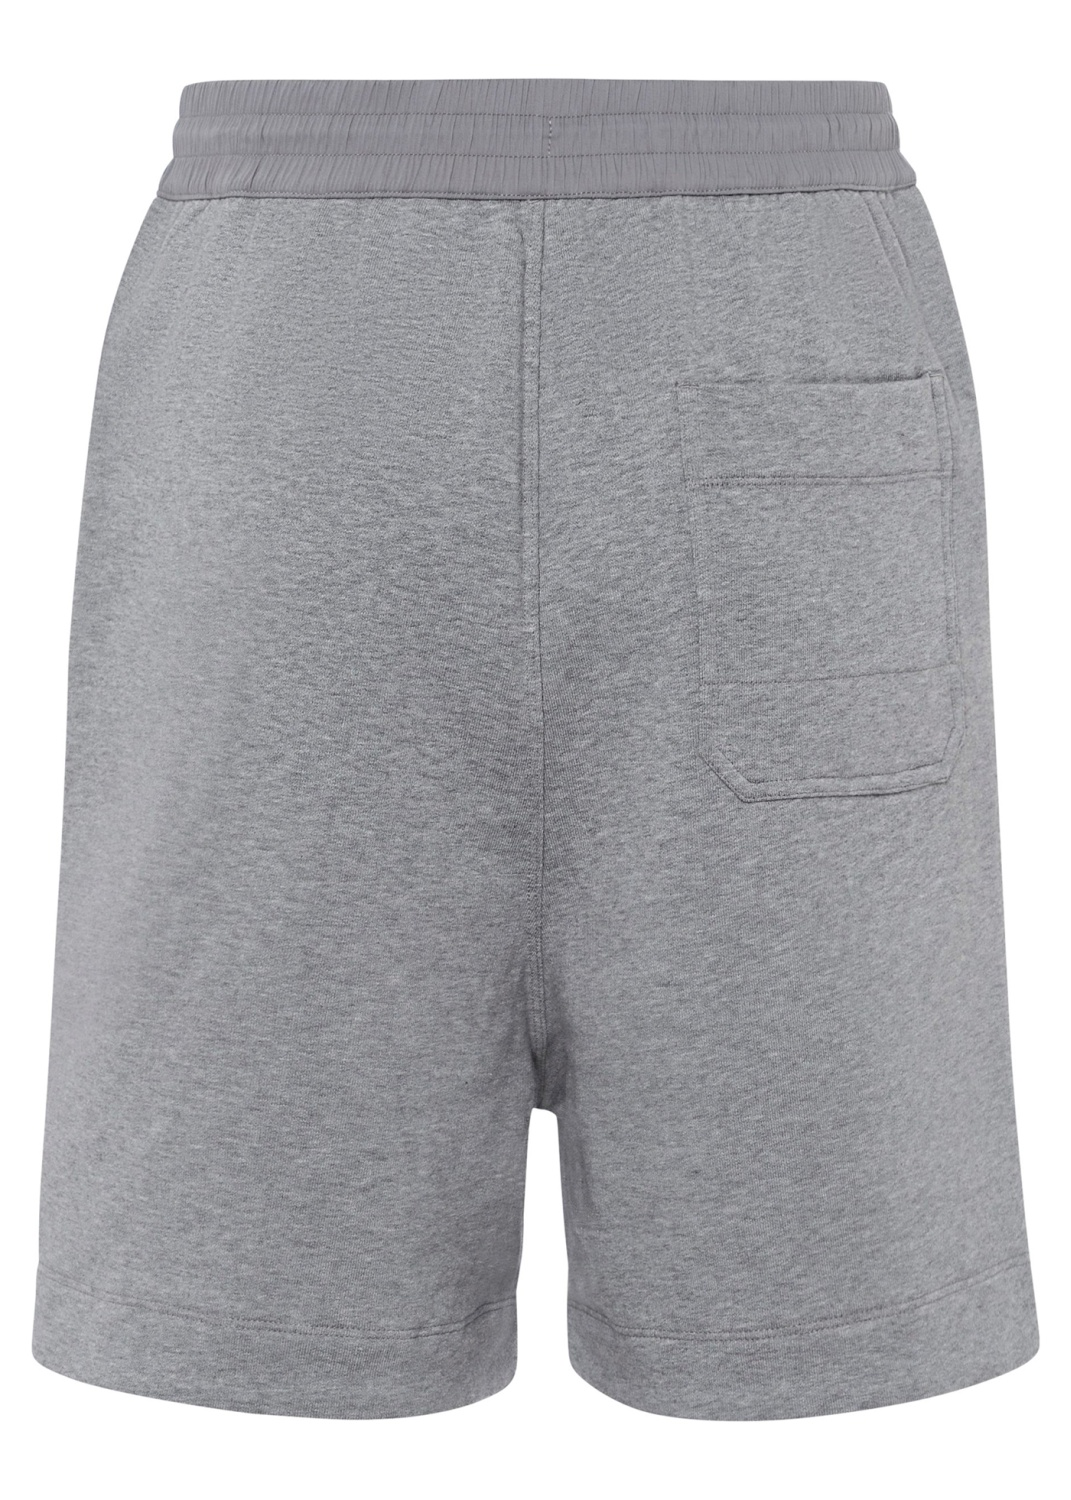 M CL TRY SHORTS image number 1